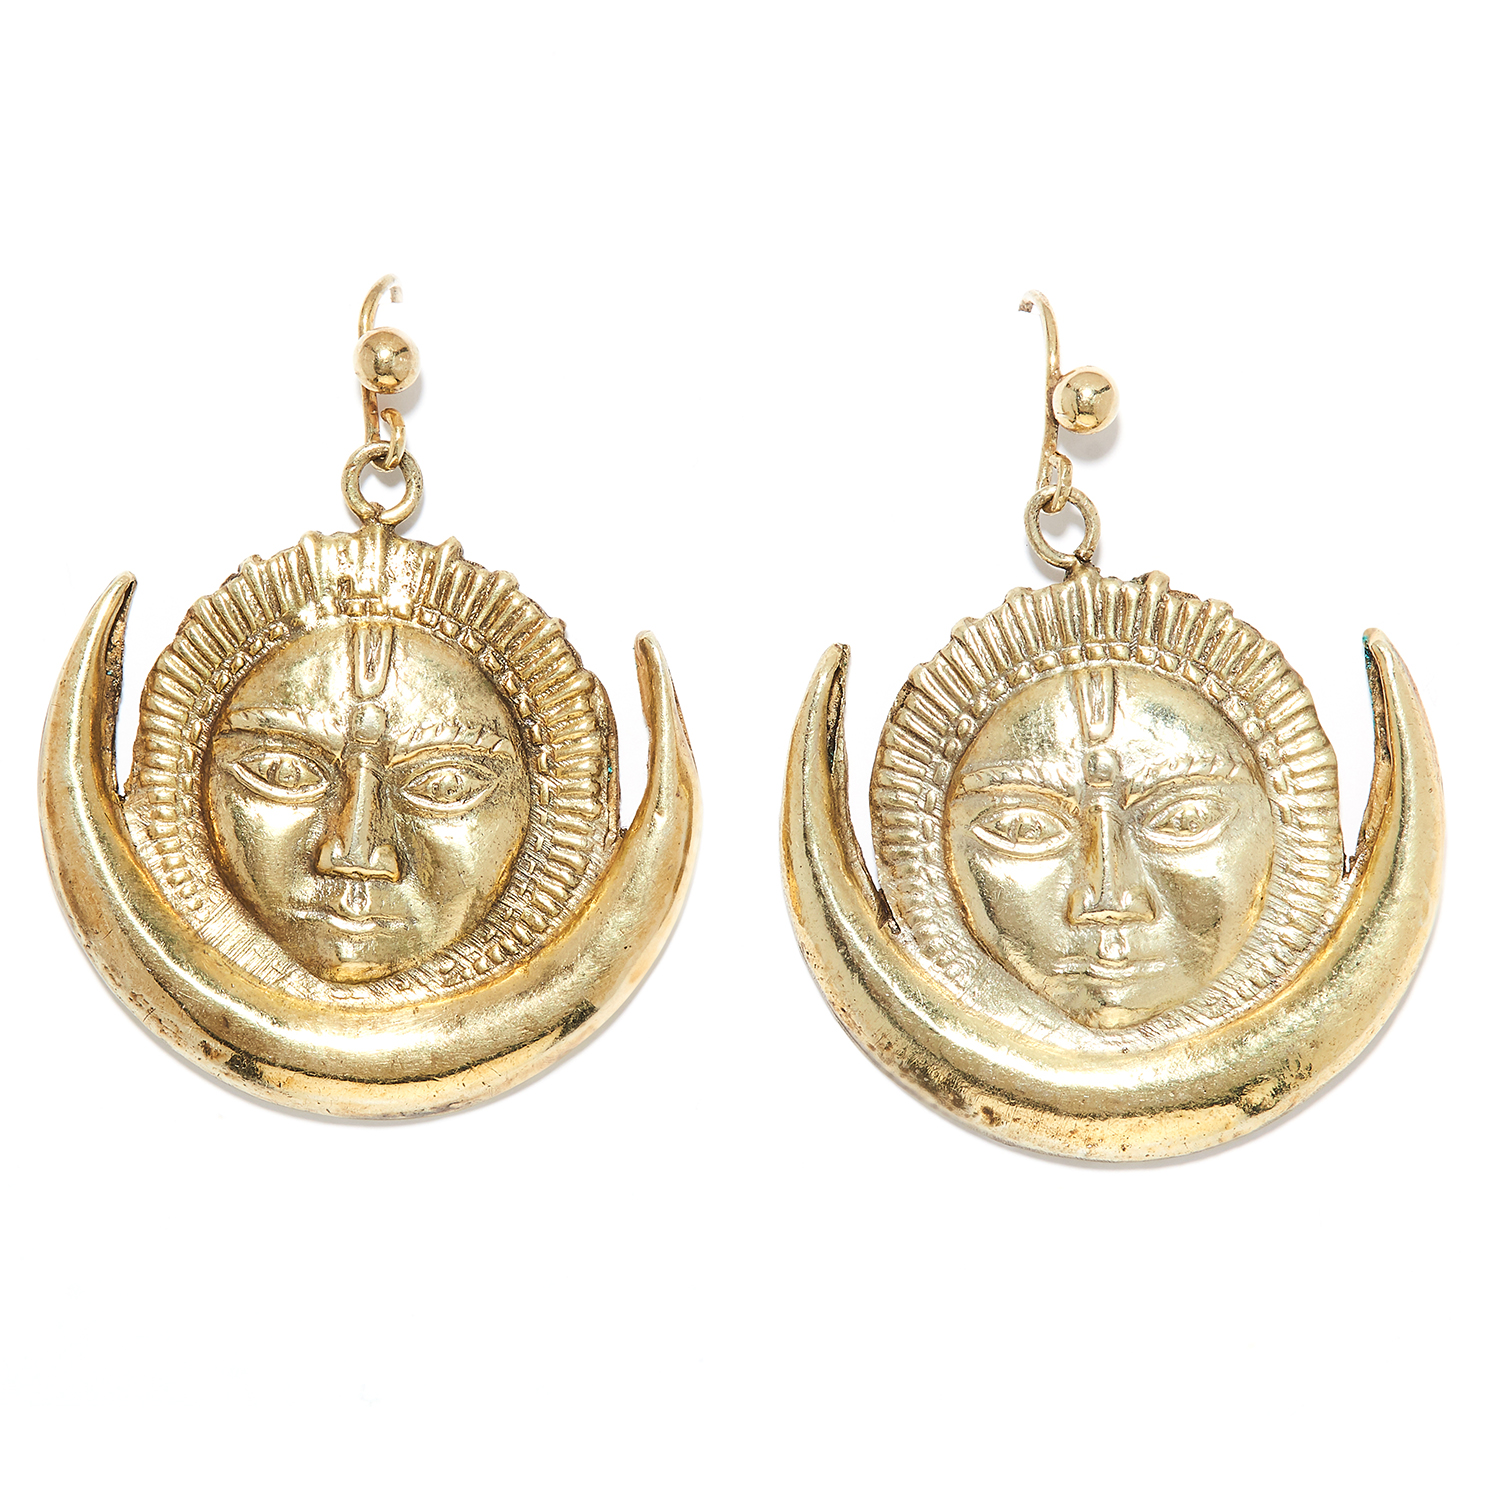 A PAIR OF SILVER EARRINGS in sterling silver, depicting a face and half moon, stamped 925, 6.98g.